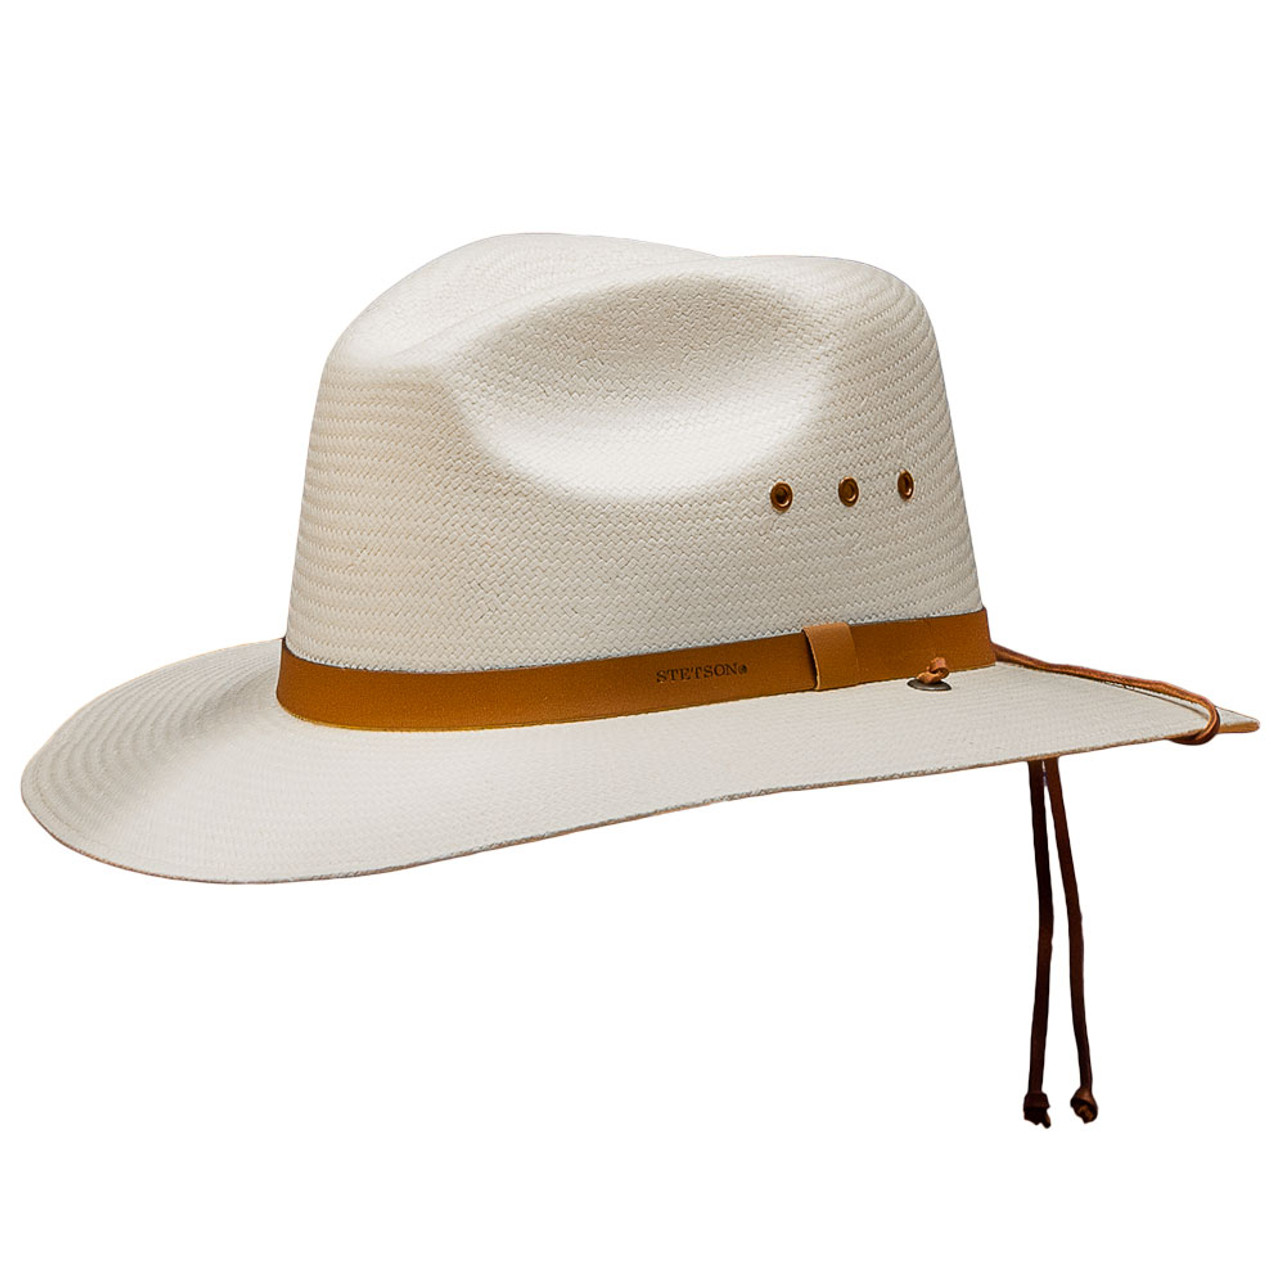 341a901f5047a2 Stetson | Los Alamos Outback Straw Hat | Hats Unlimited